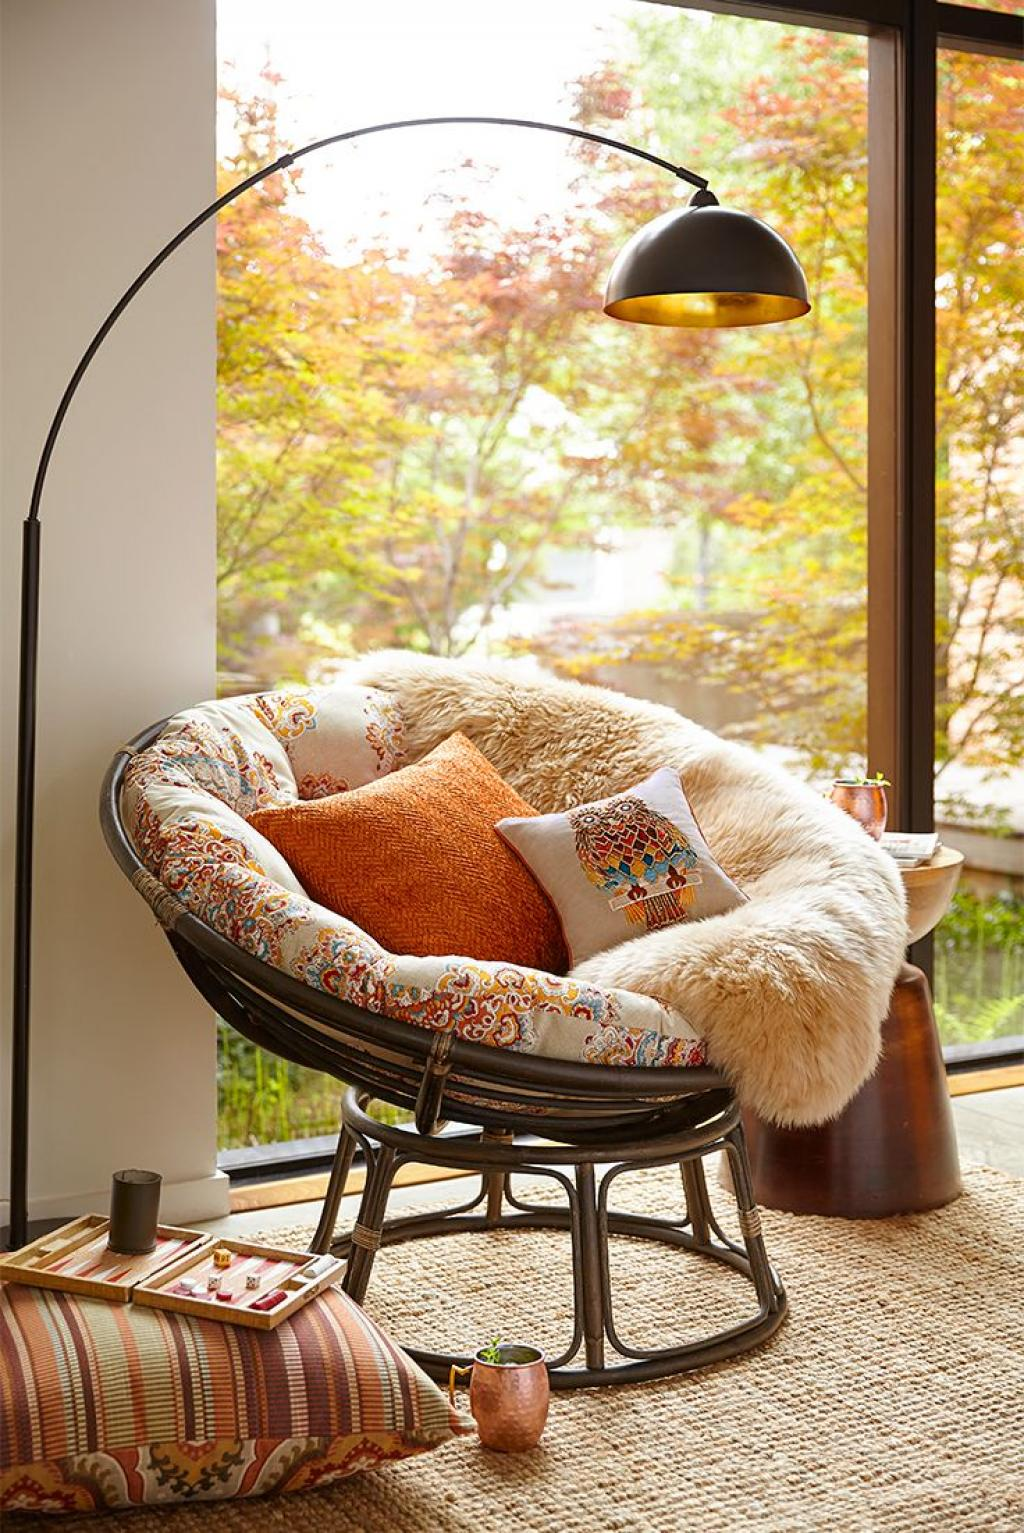 Horrible Copper Lamp Reading Chair Rattan Material Reading Papasan Chair furniture Floor Reading Chair